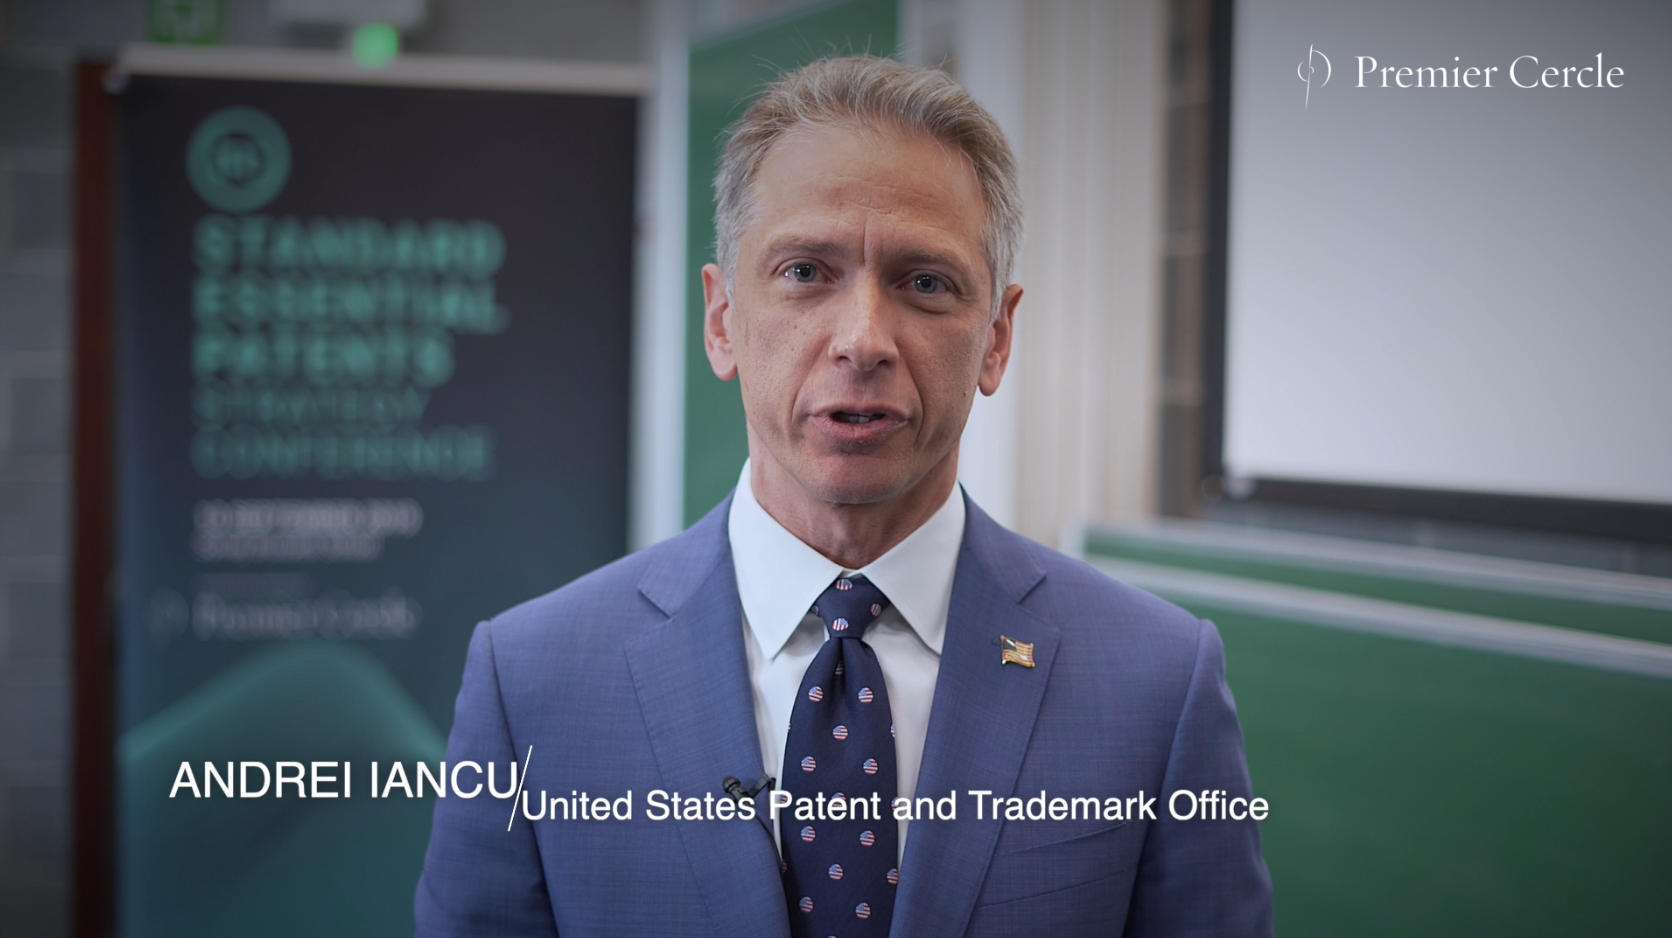 Andrei Iancu interviewed by Premier Cercle